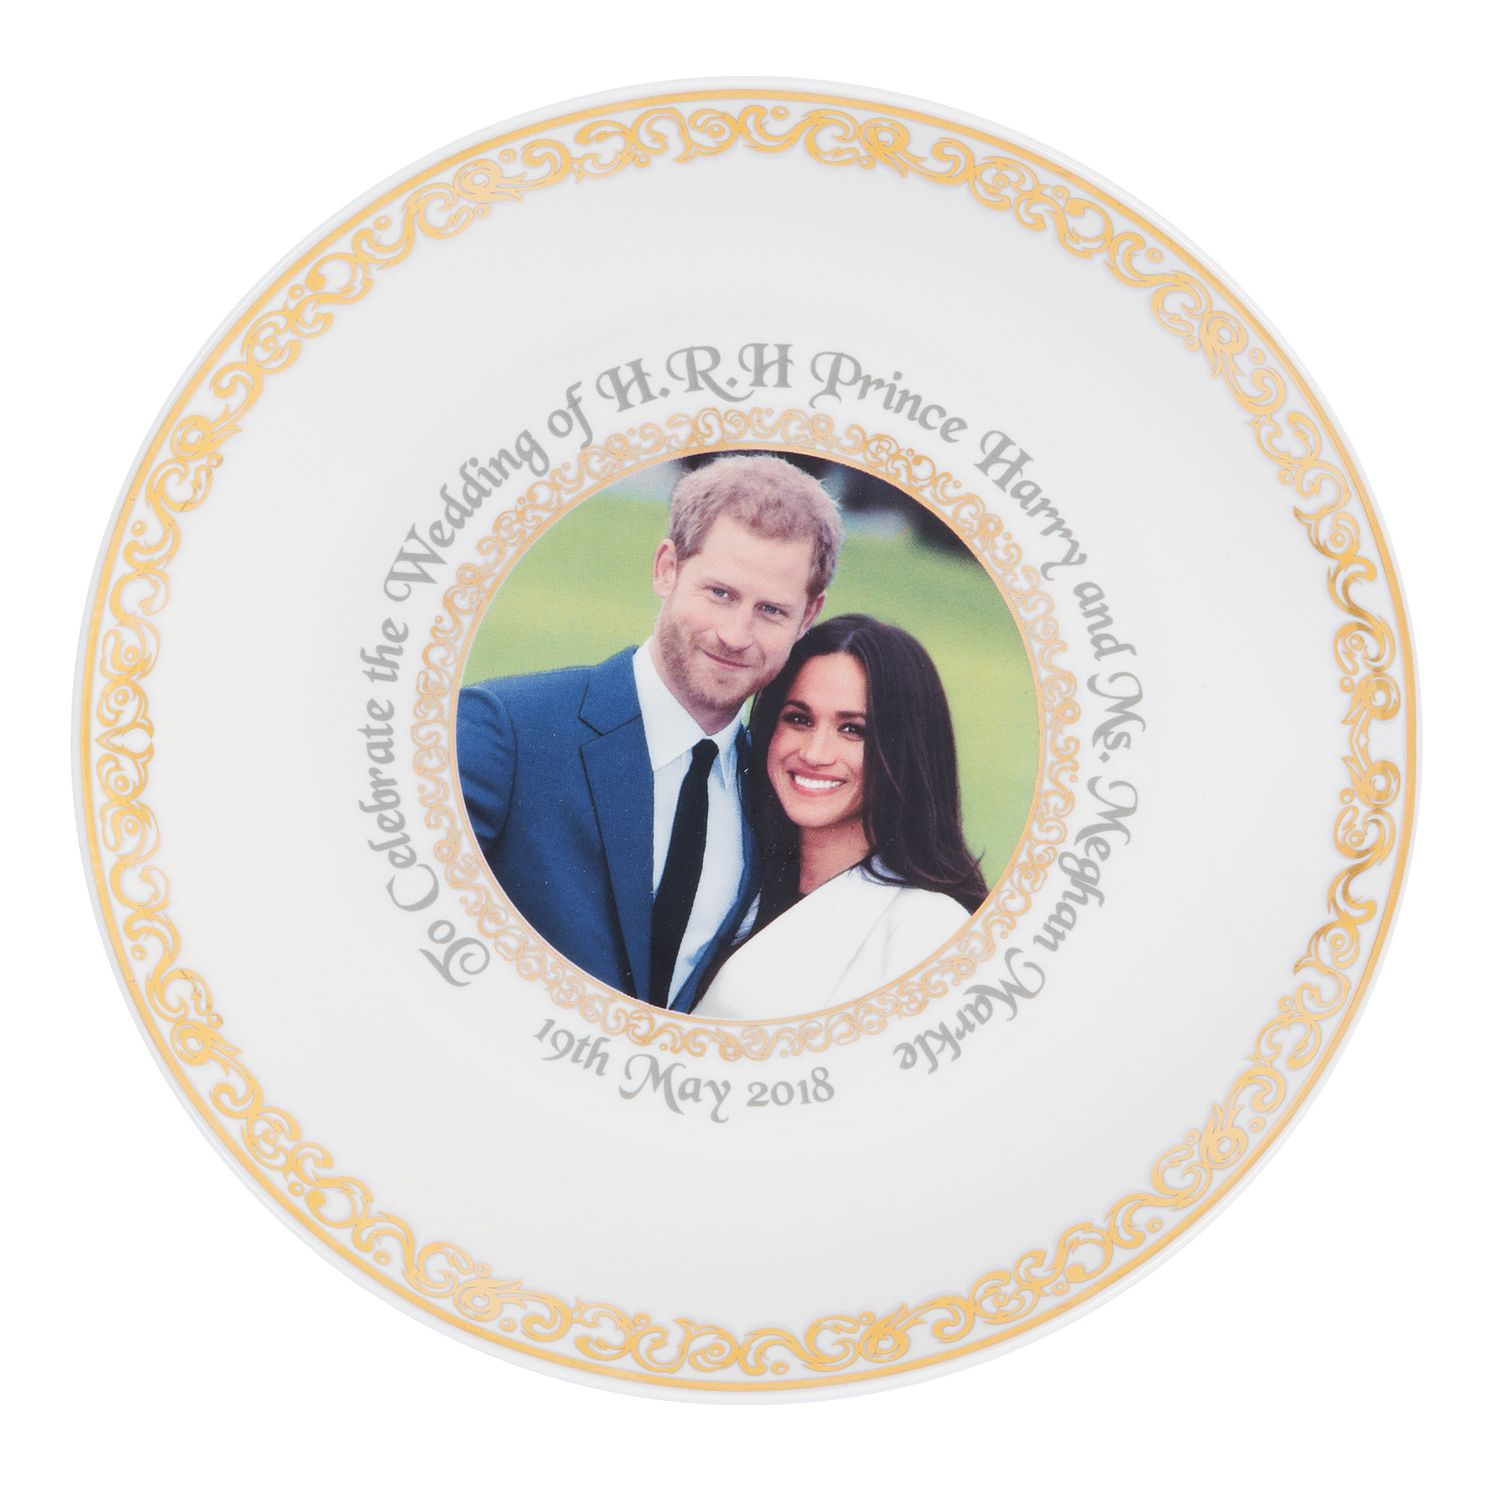 Royal Wedding China Plate - Product number 9387781